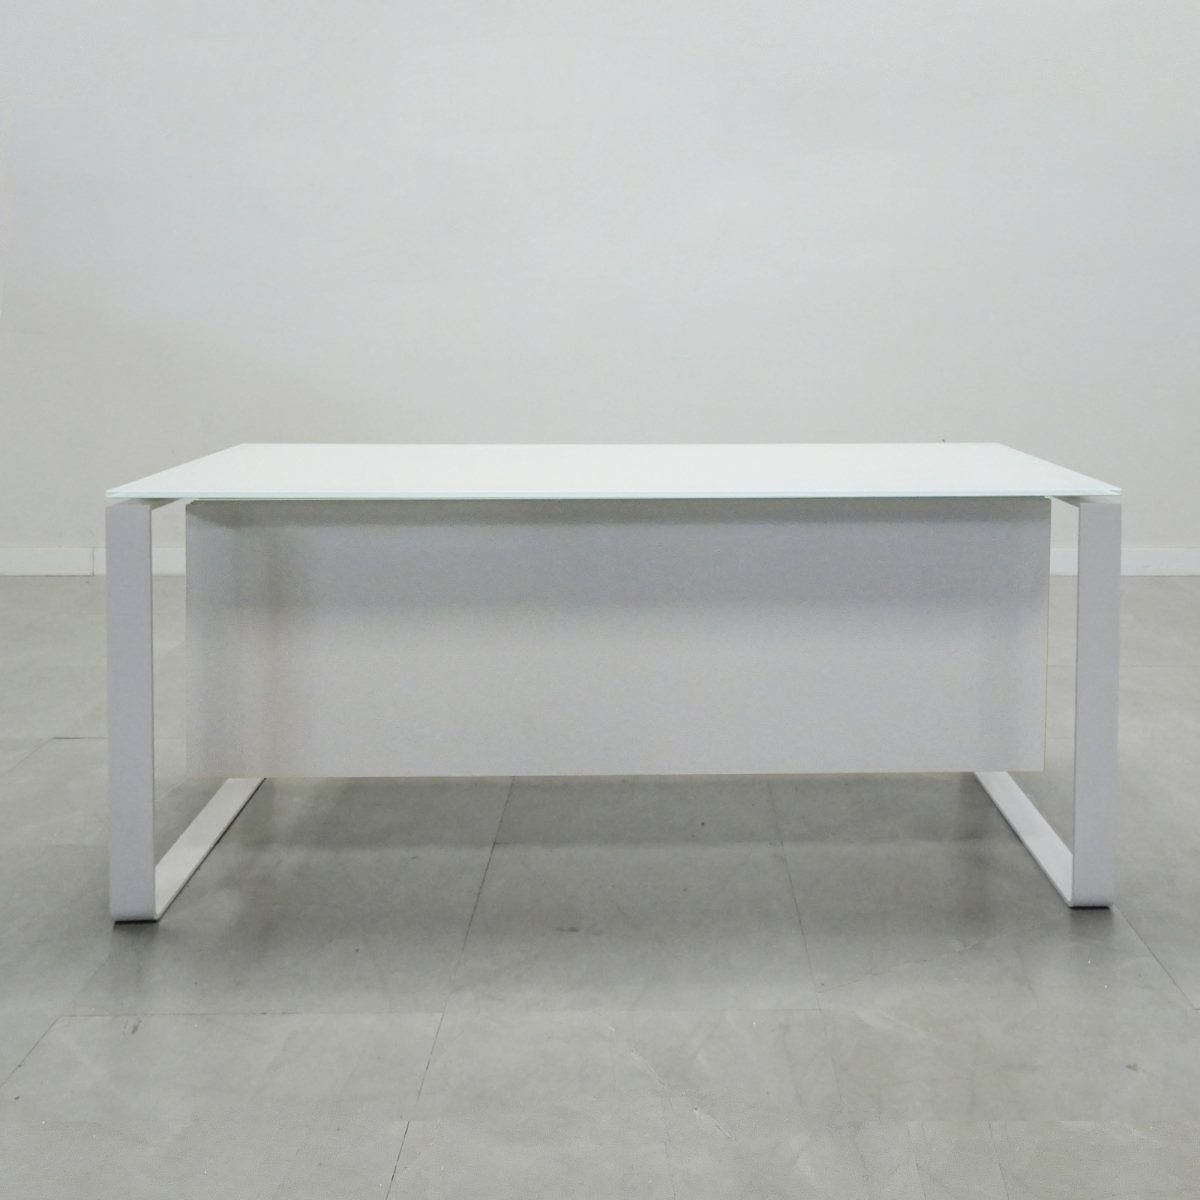 72 In. Aspen white frame white Glass Top Desk